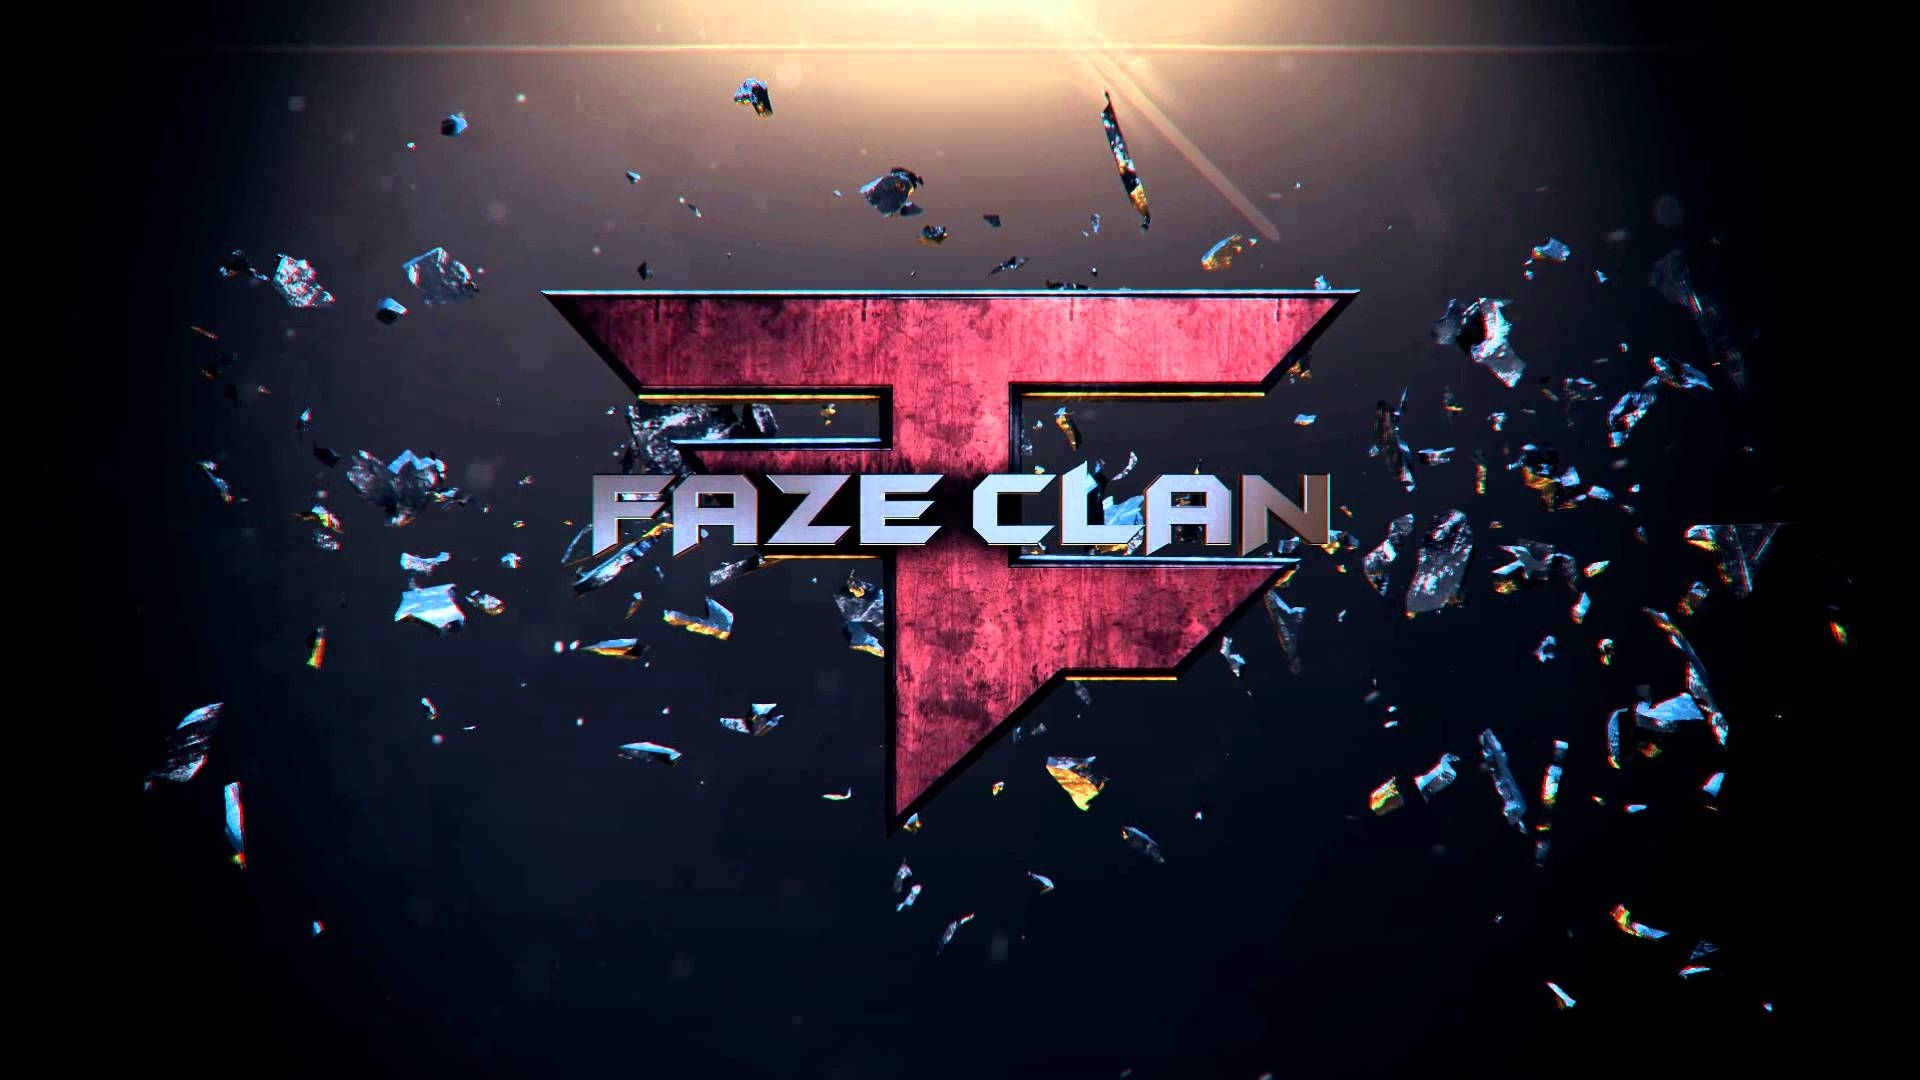 10 Most Popular Faze Clan Wallpaper Hd FULL HD 1080p For PC Desktop